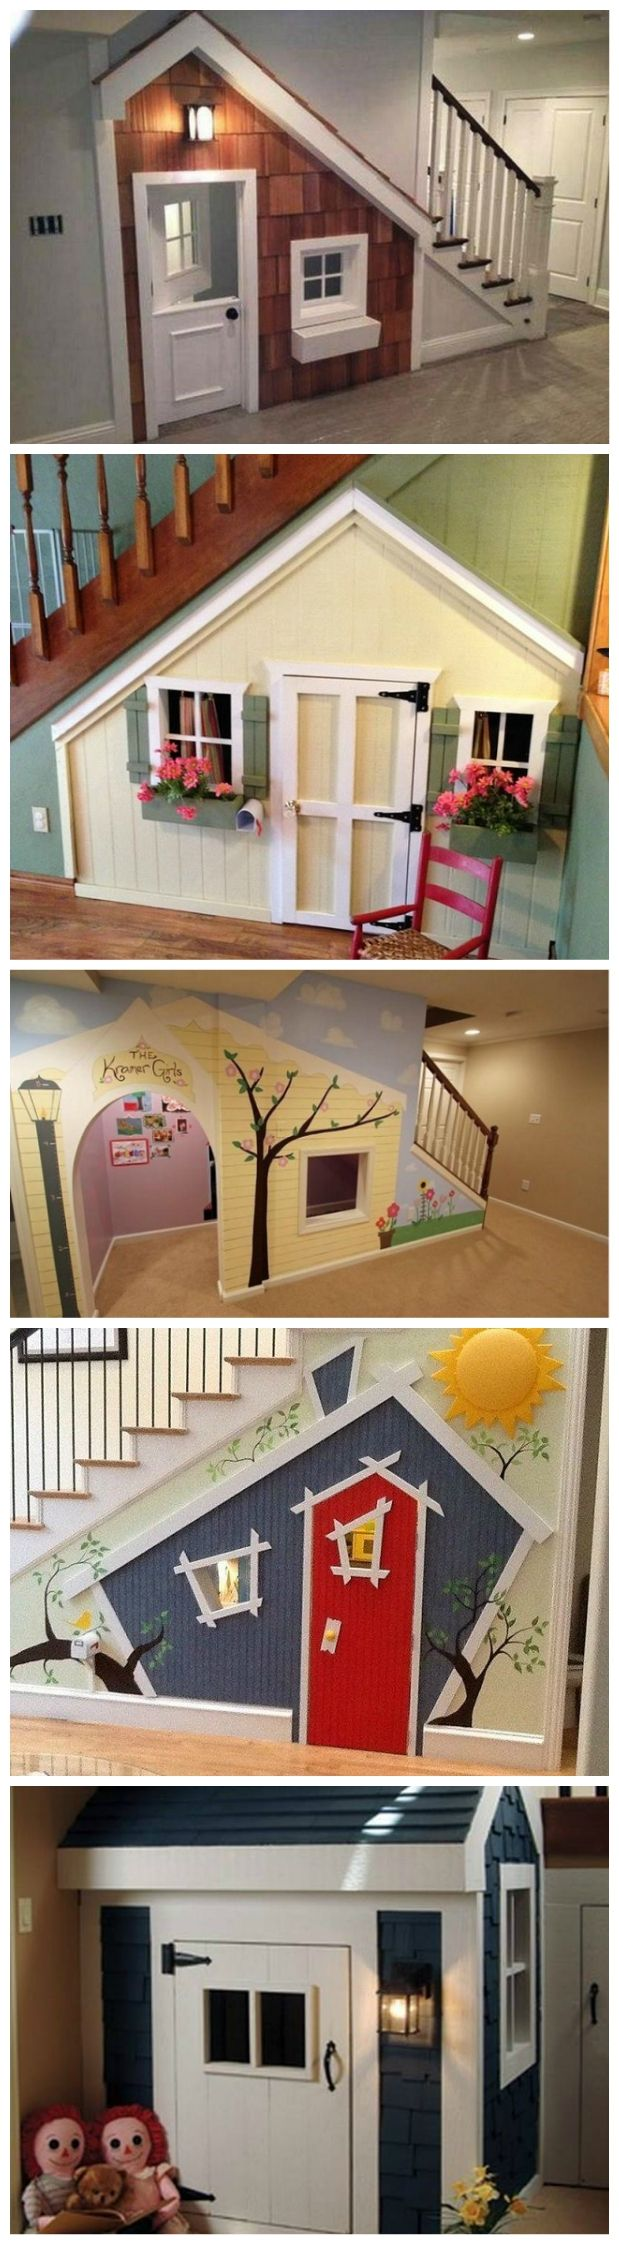 basement ideas for kids area. What great idea of having a playhouse under your stairs  especially if the downstairs is big play area Best 25 Kids basement ideas on Pinterest Basement kids